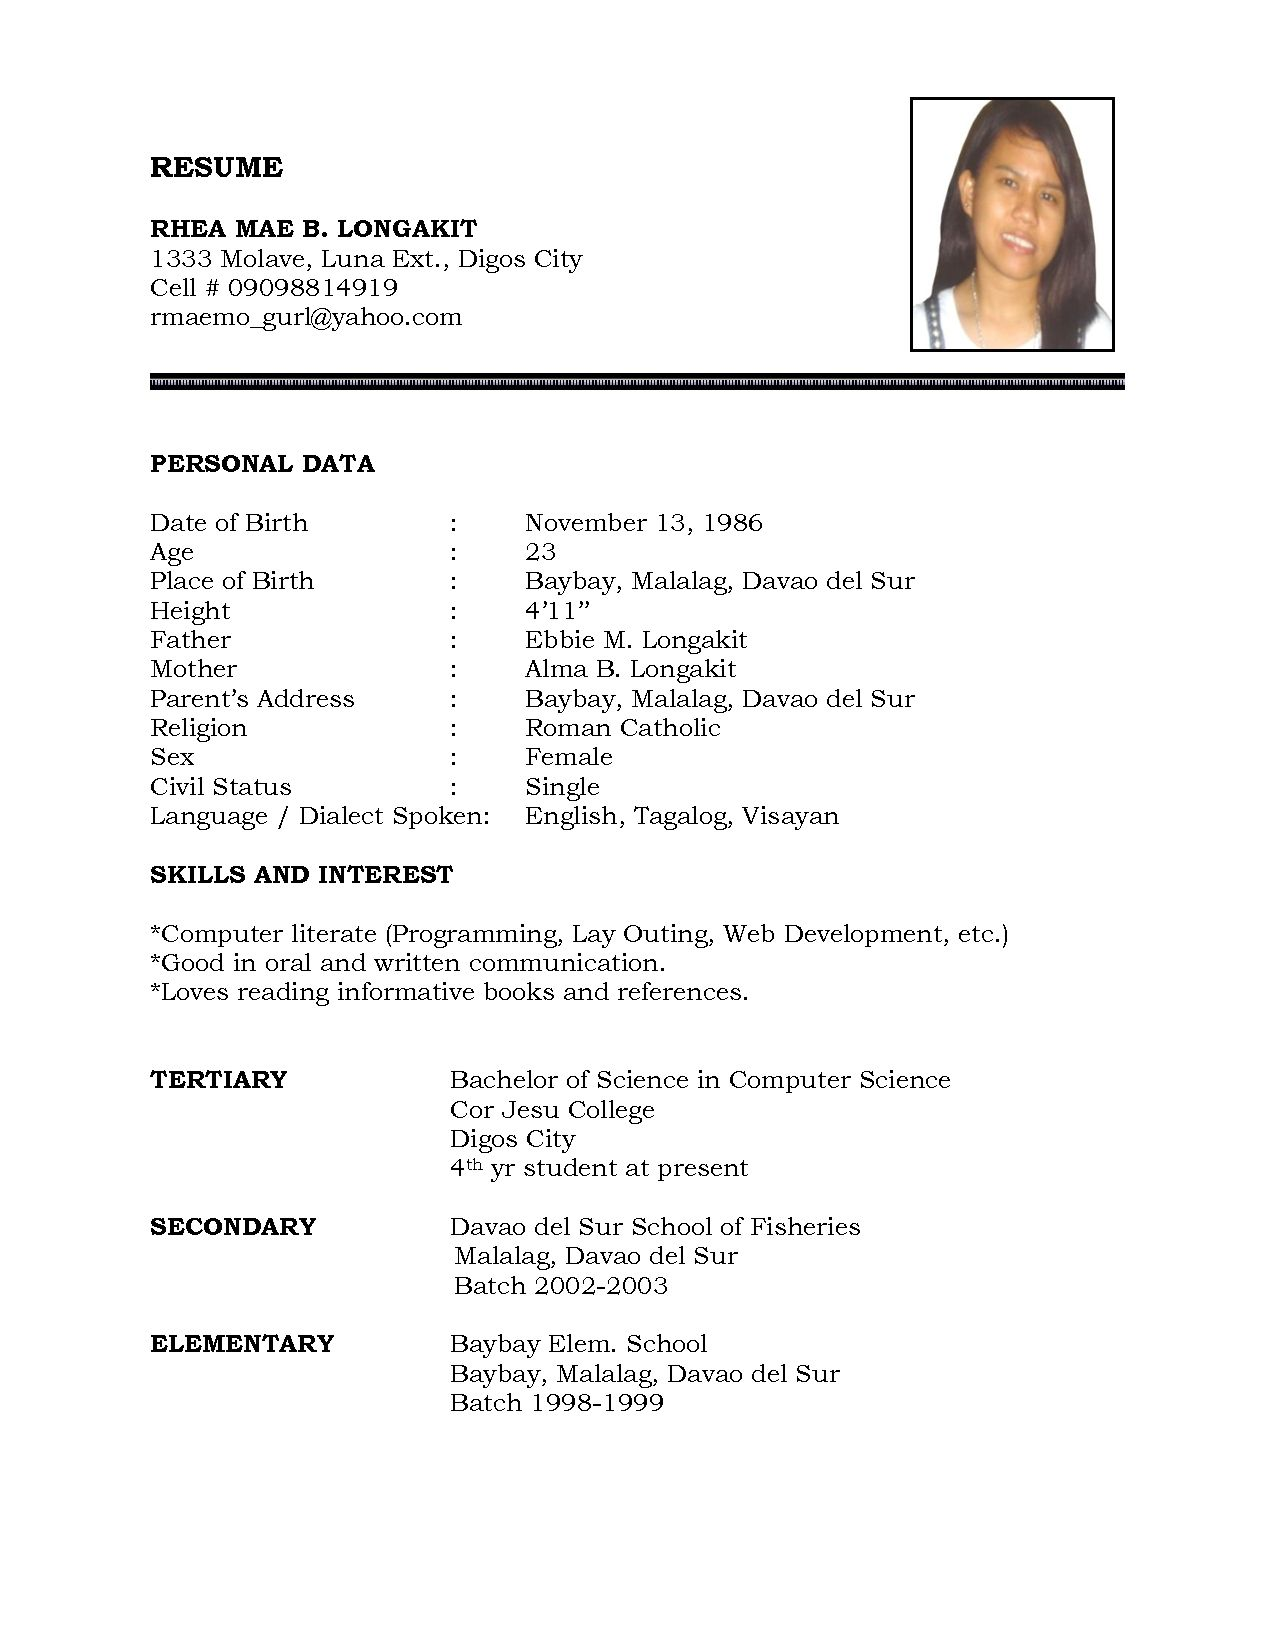 resume sample simple de9e2a60f the simple format of resume